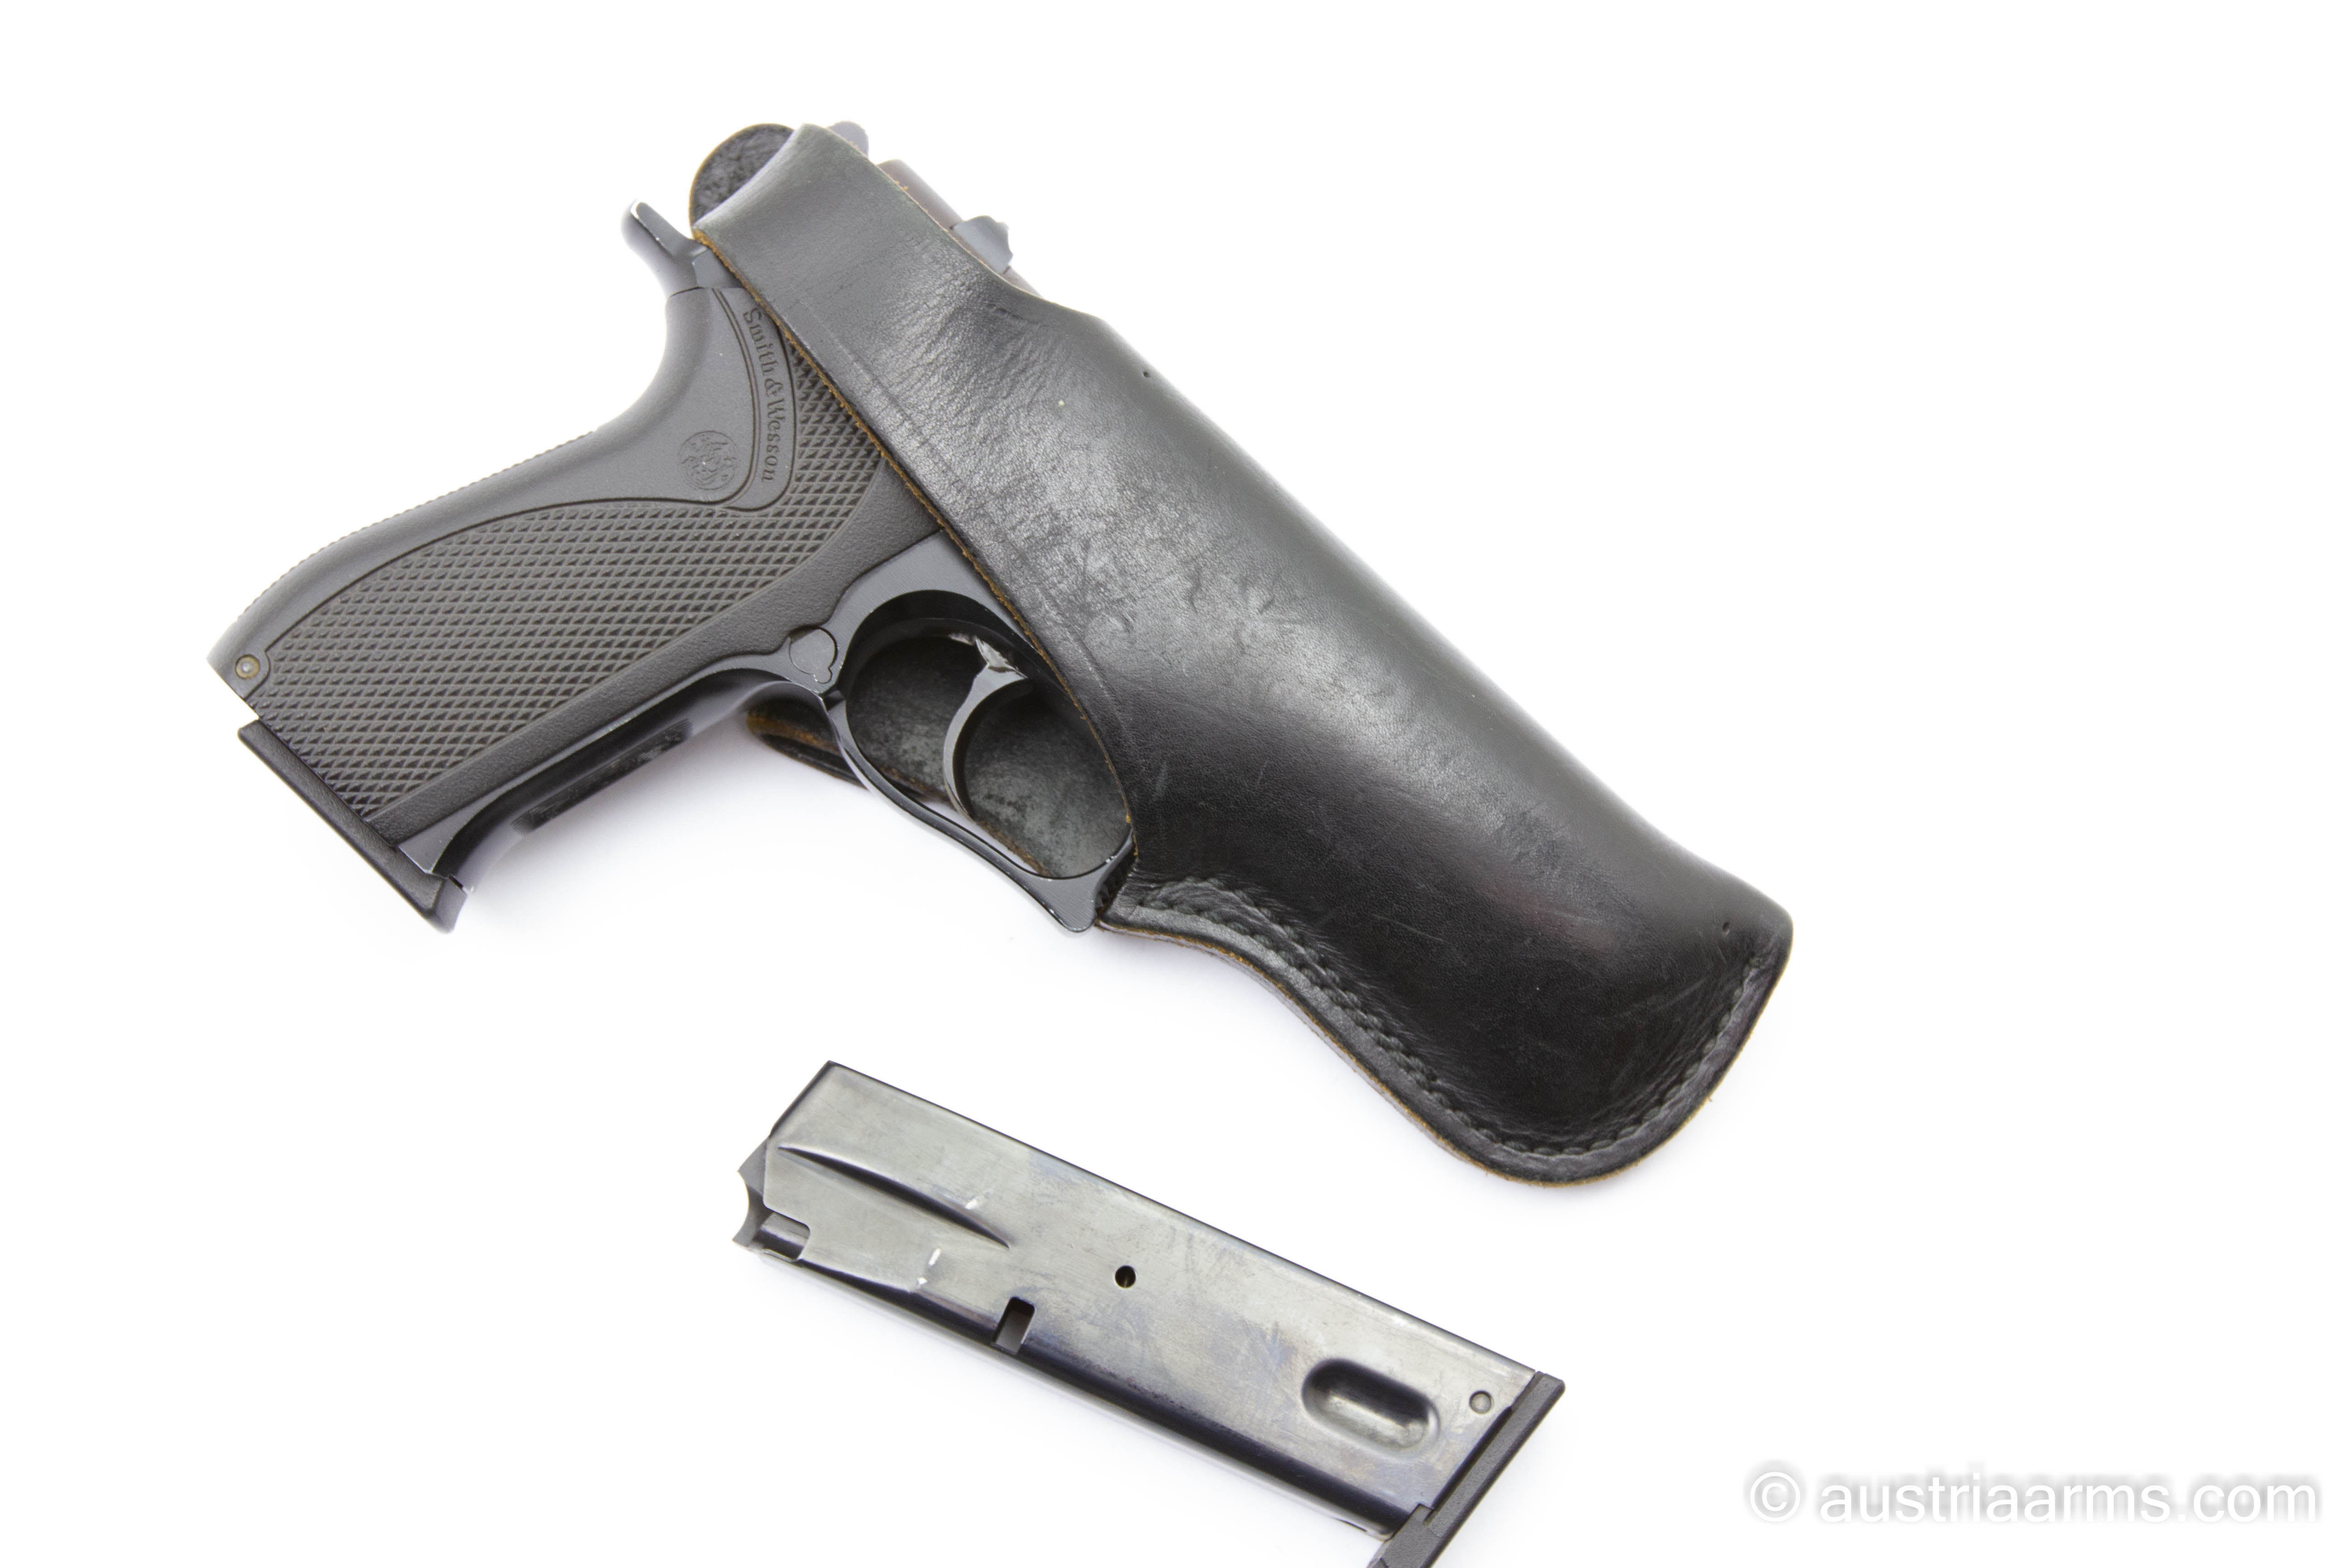 Smith & Wesson 5904, 9 x 19 mm - Image 6